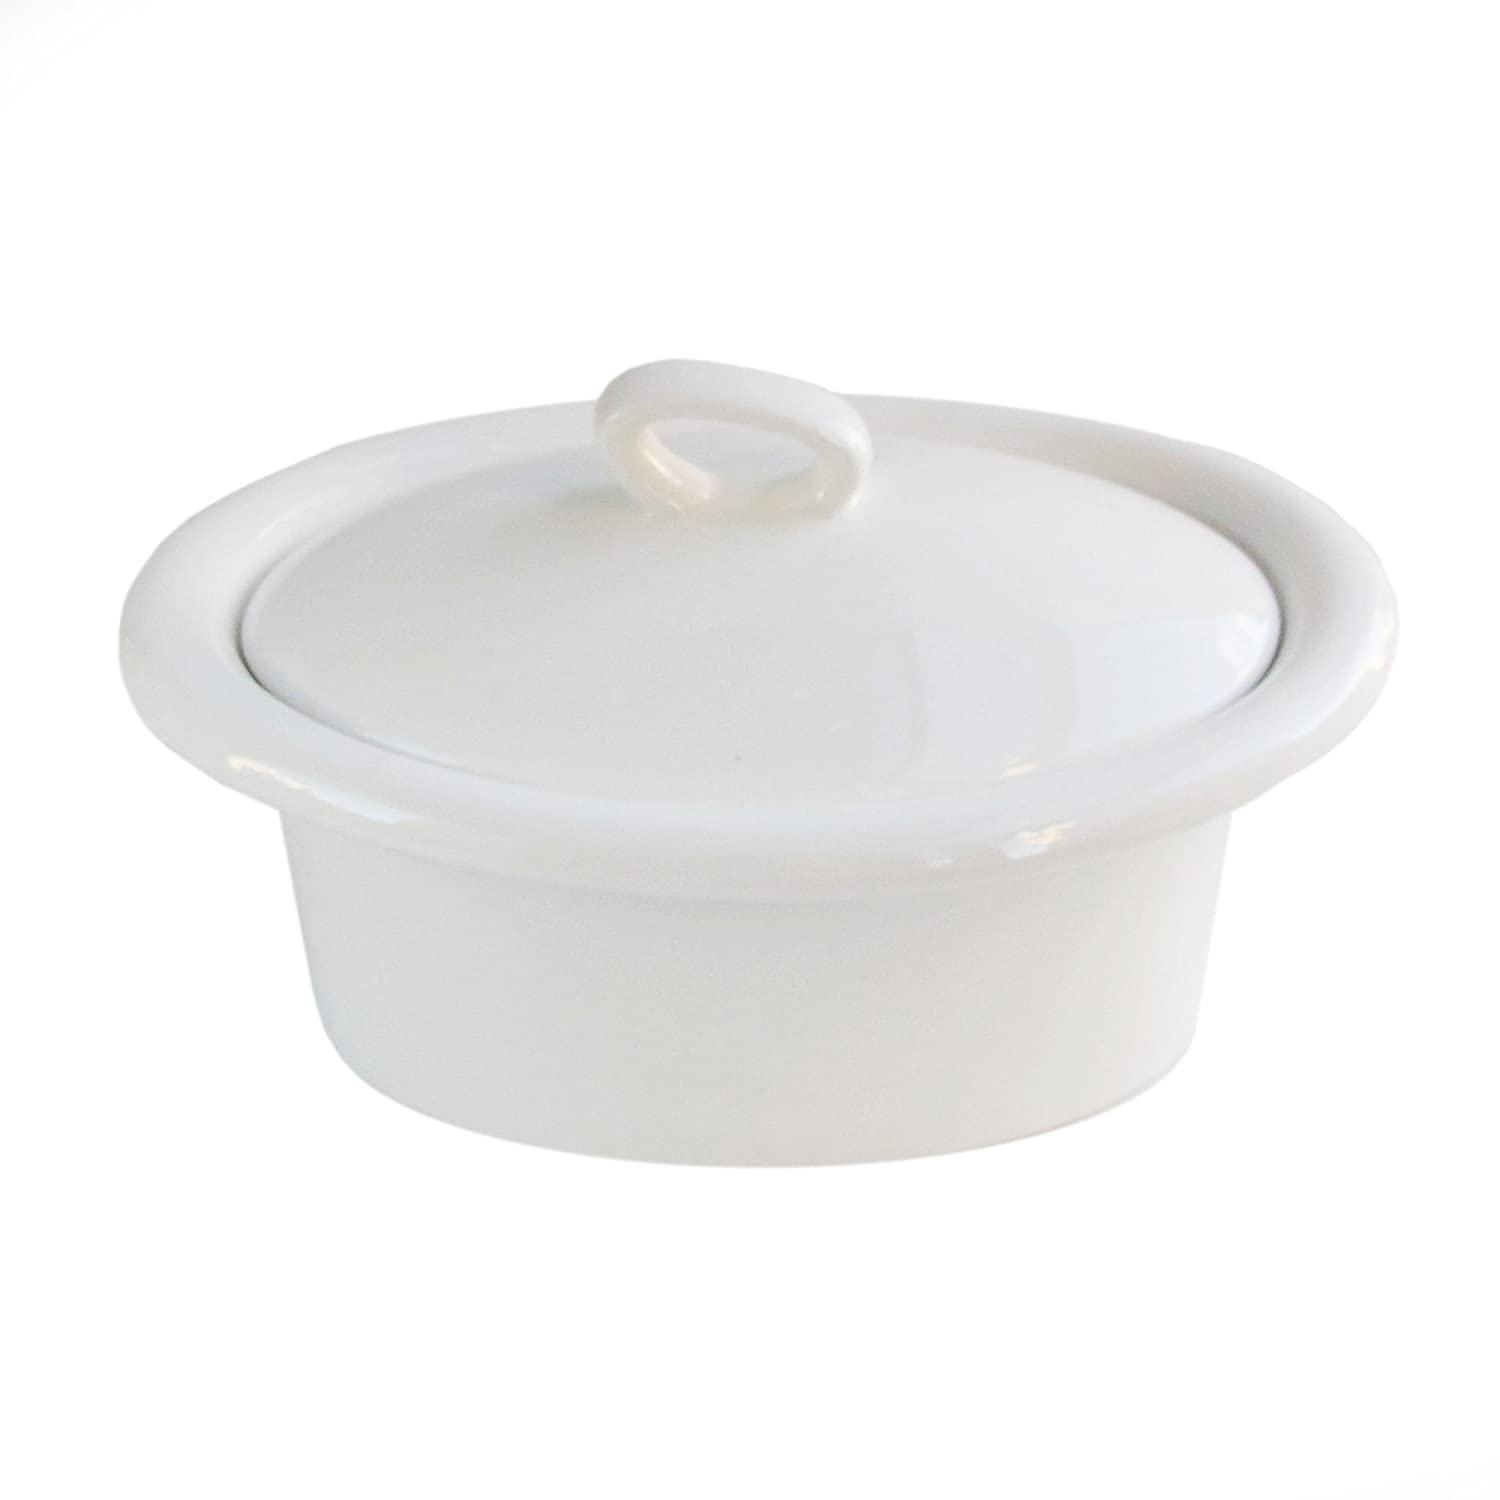 American Atelier 6216-CAS8 Essex Oval Casserole with Lid, White